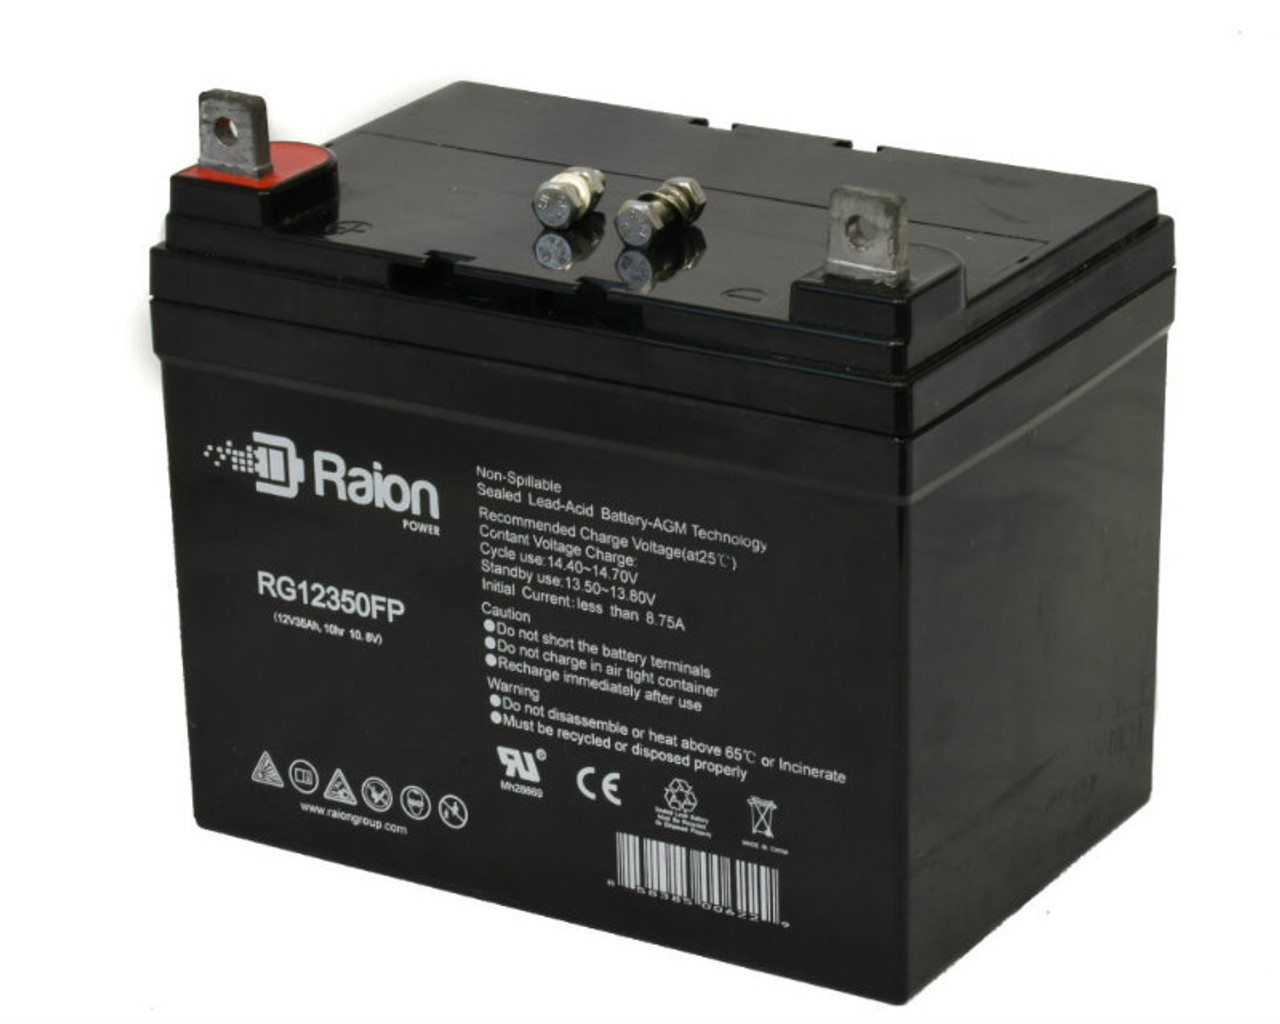 RG12350FP Sealed Lead Acid Battery Pack For Leisure Lift Eclipse Mobility Scooter